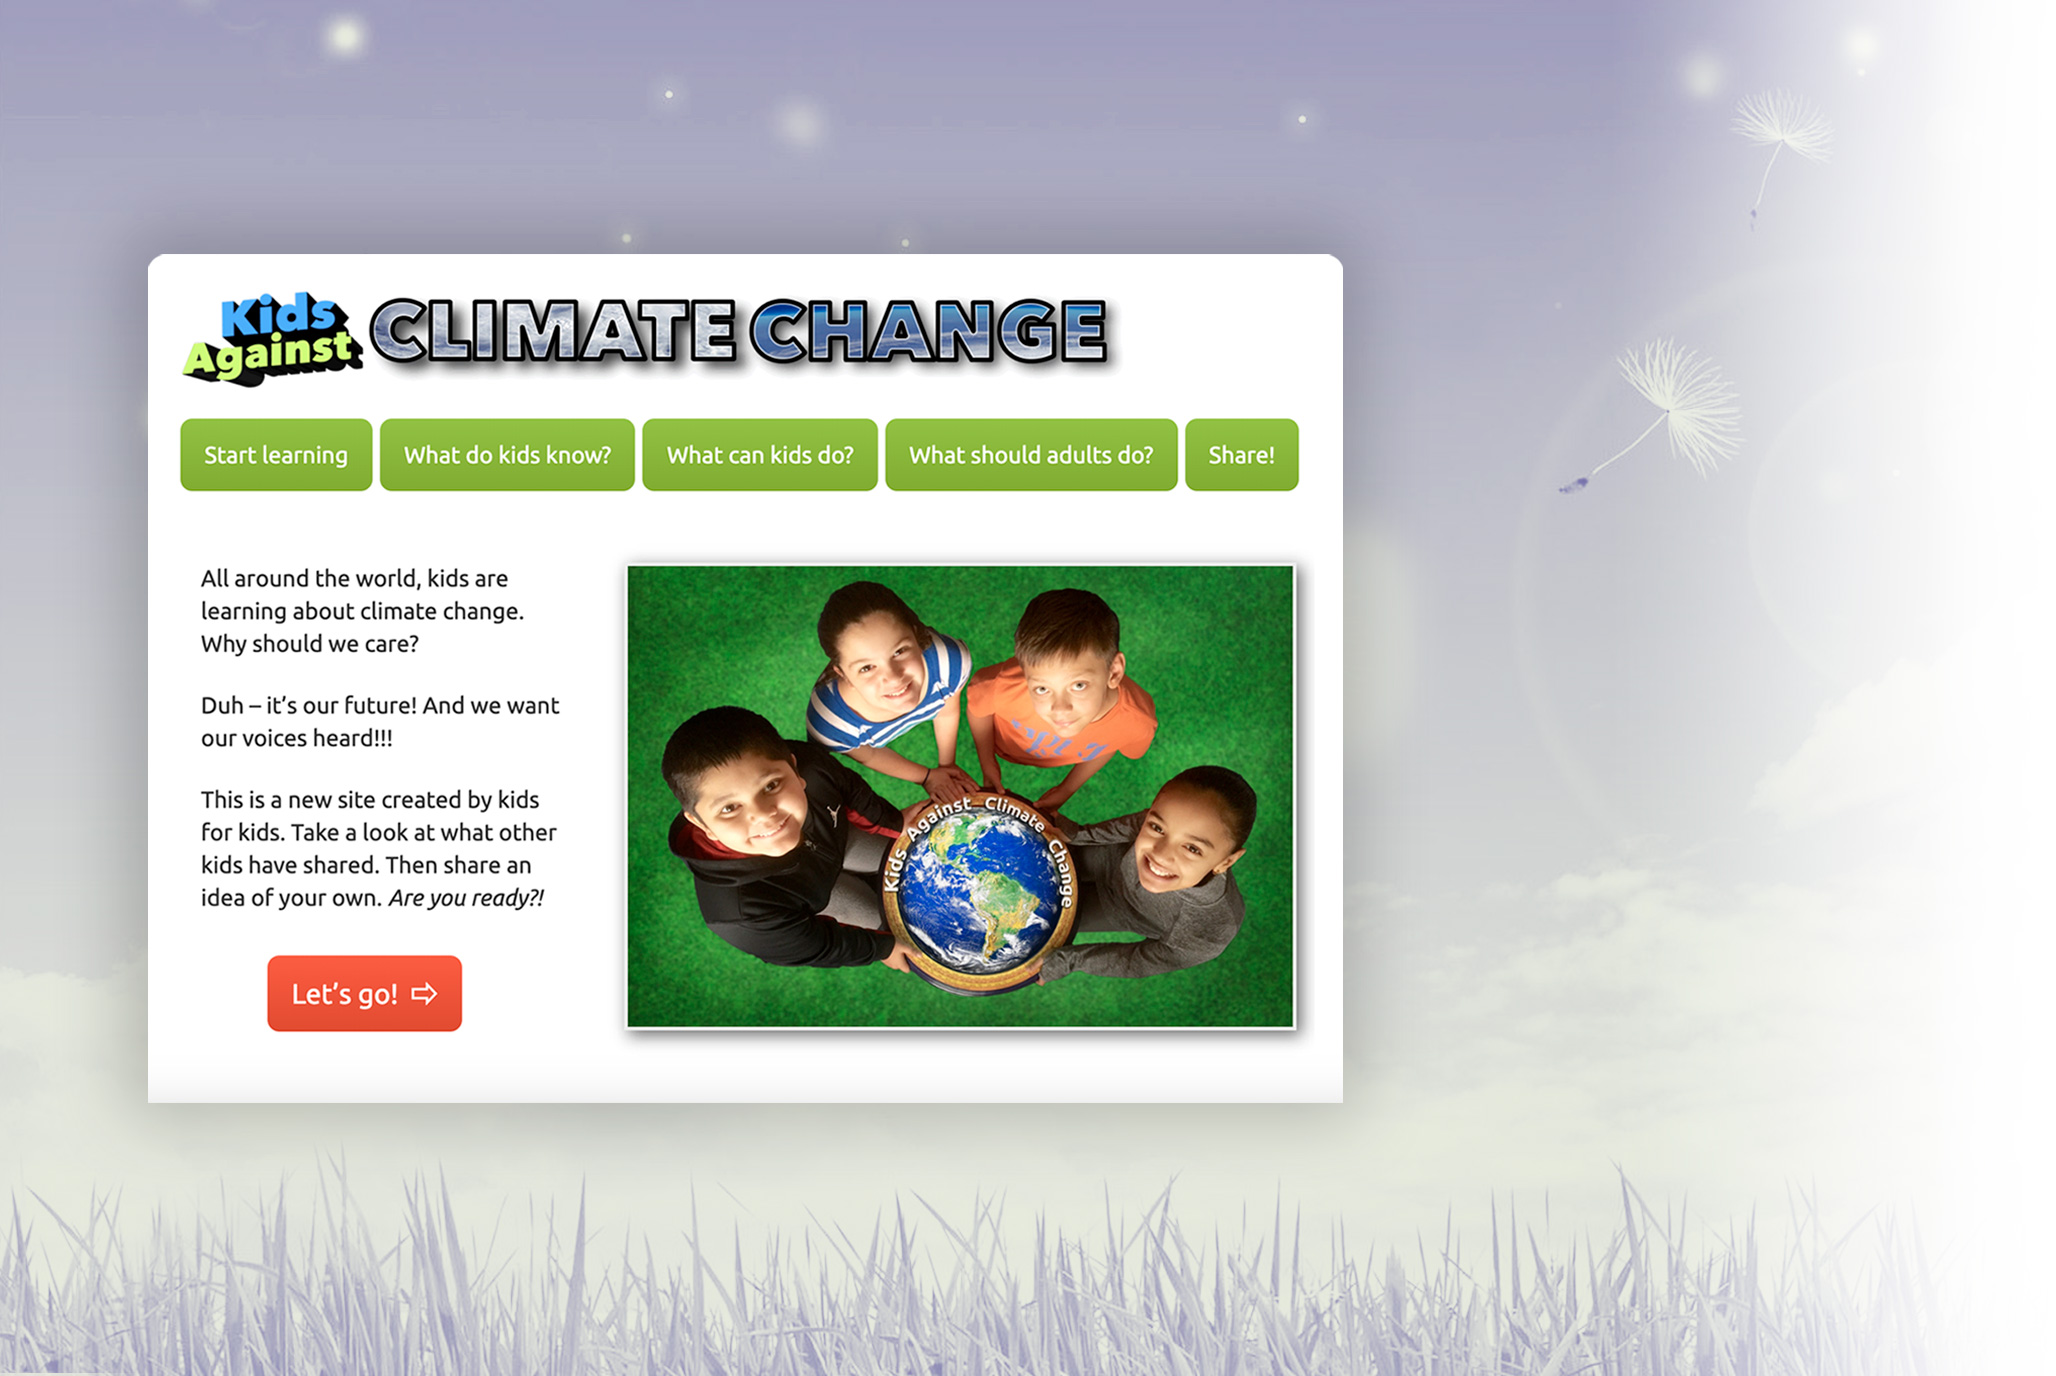 An authentic audience for students and free resources for teachers - Kids Against Climate Change is a website by kids for kids, hosted by Ms. Christie-Blick.